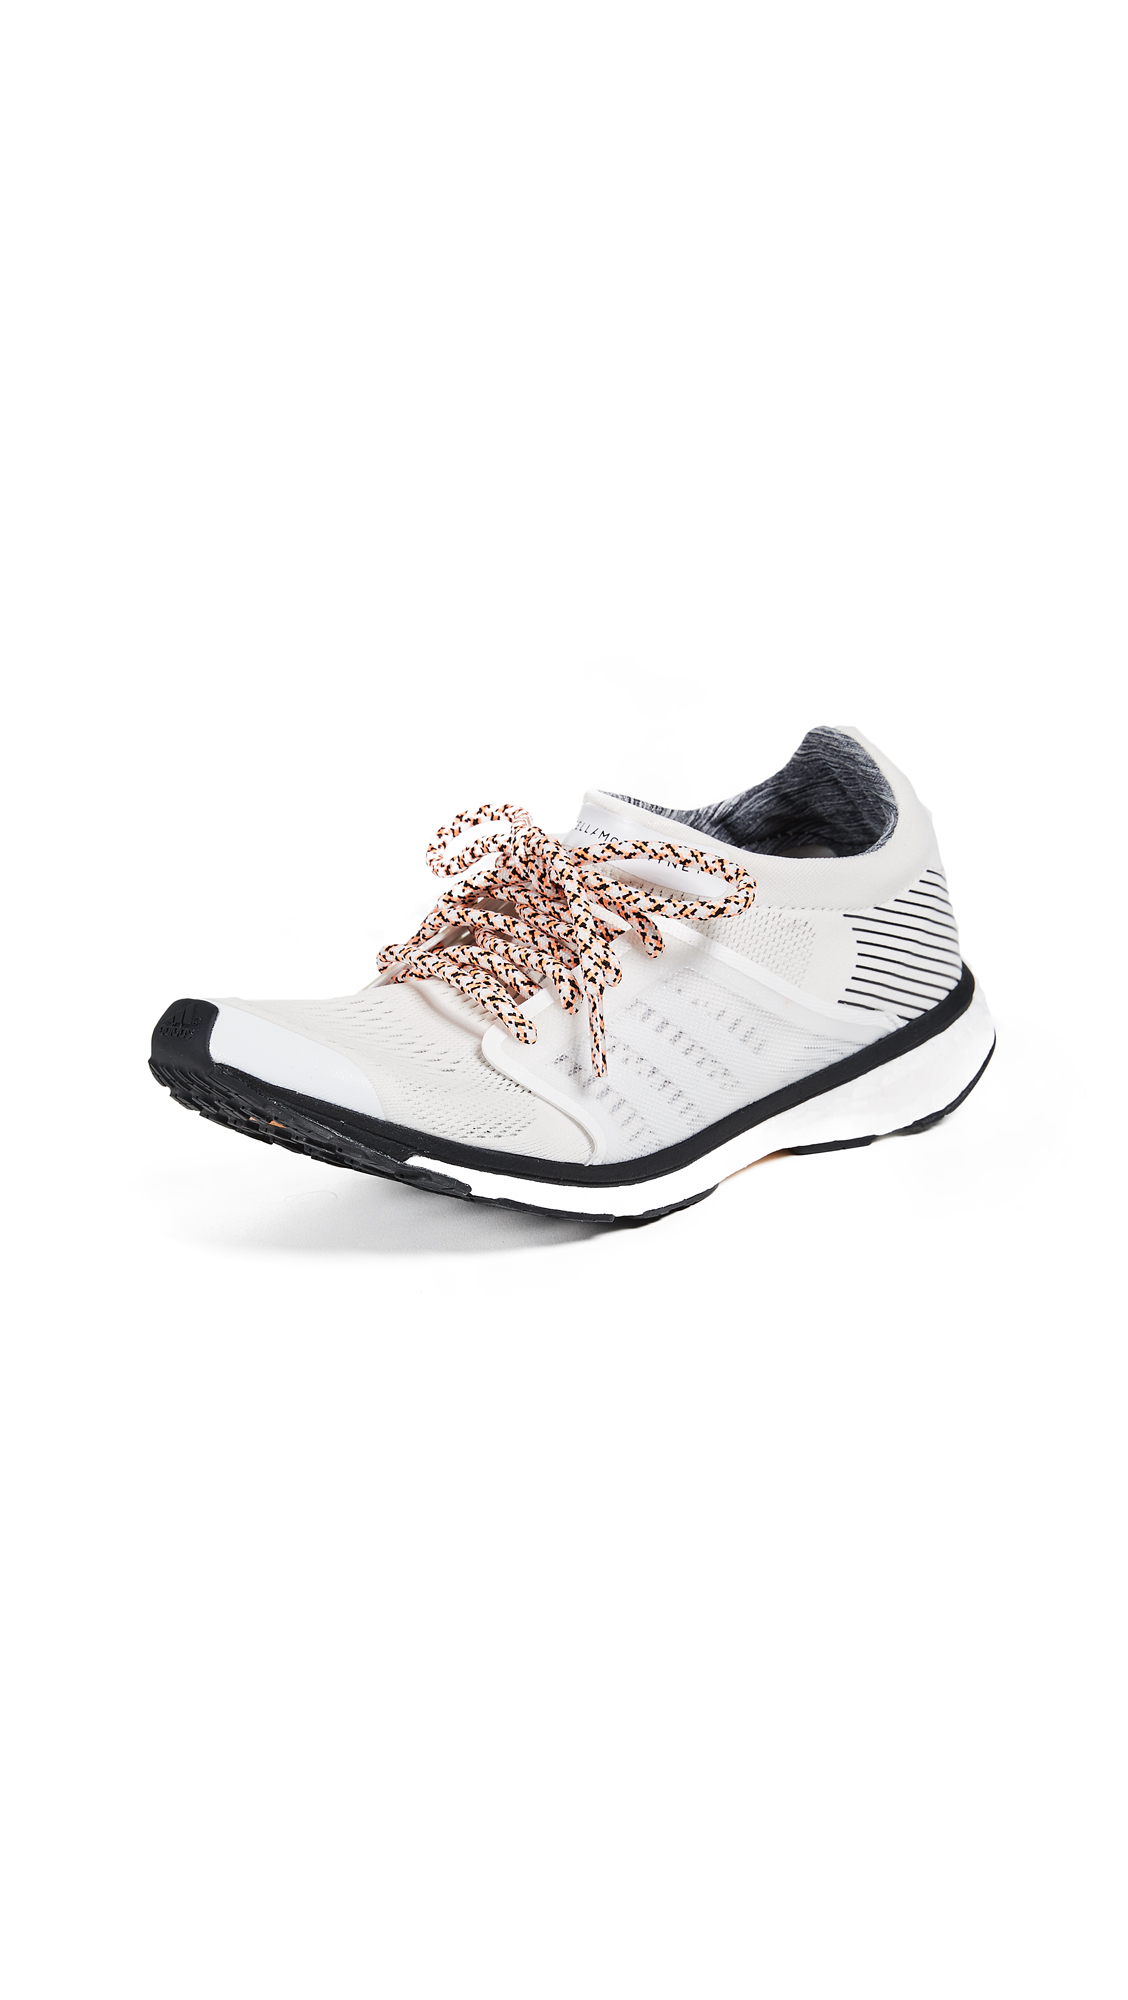 adidas by Stella McCartney Adizero Adios Sneakers - Core White/Stone/Core Black